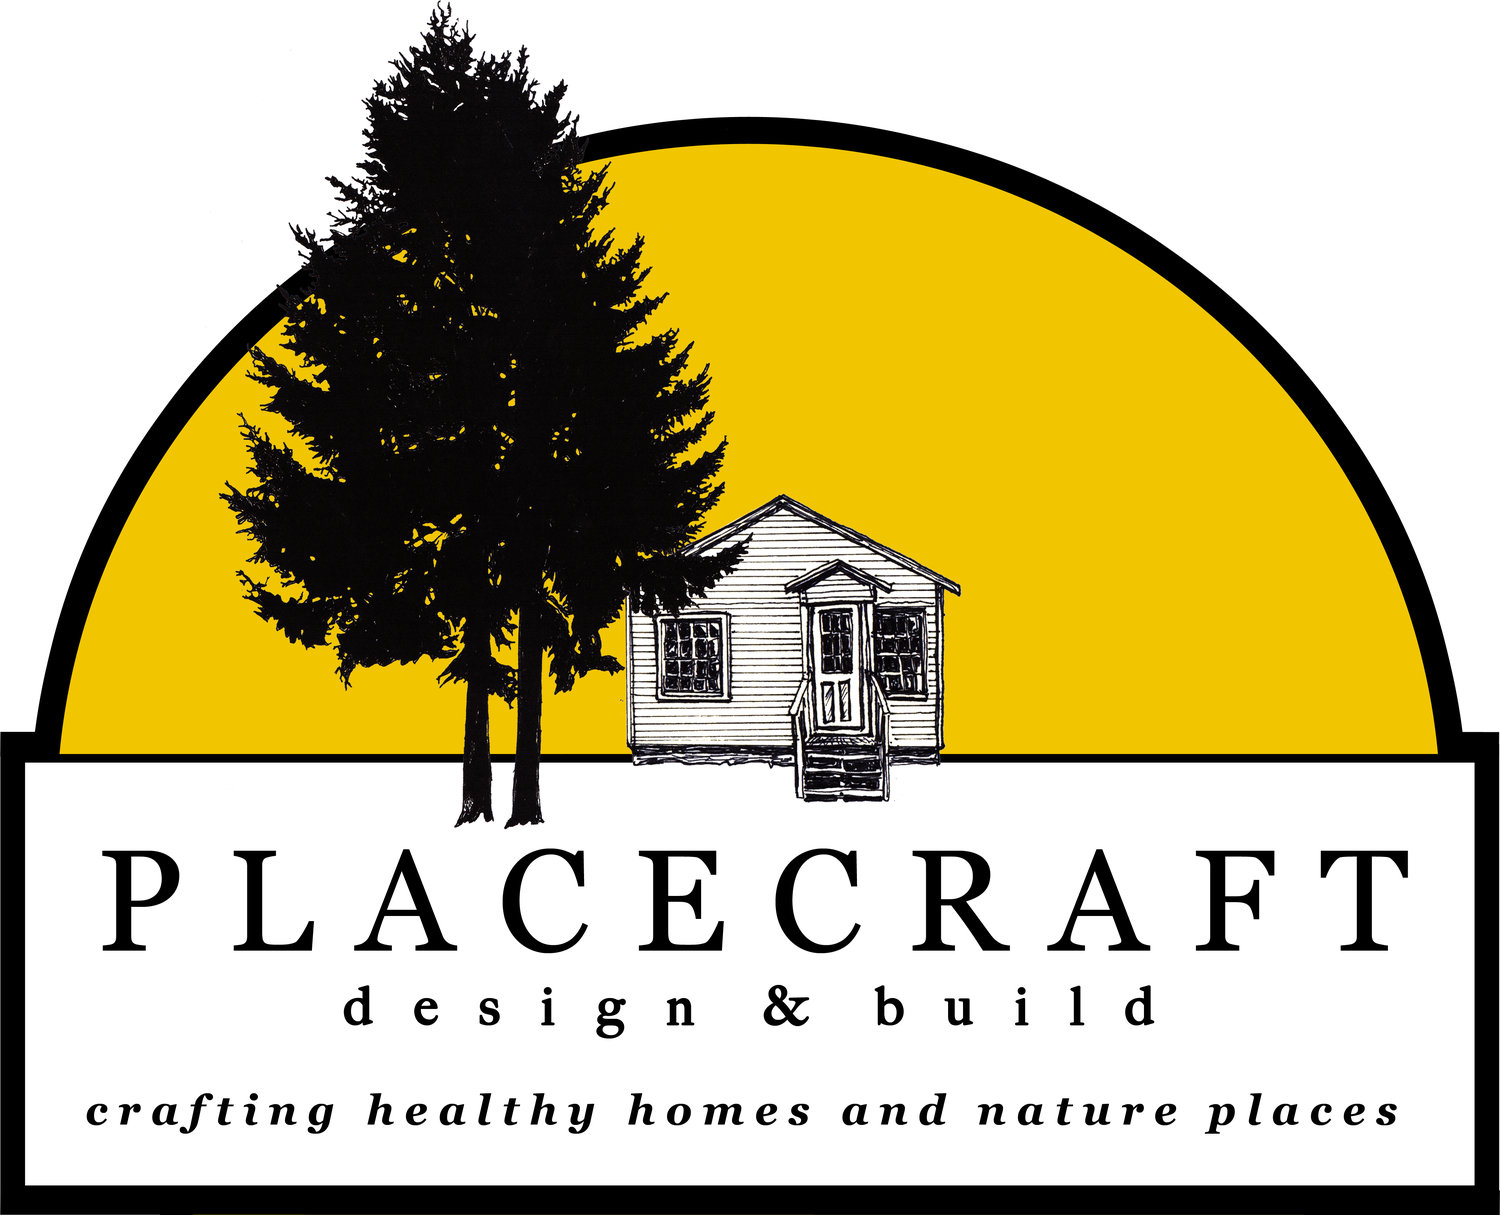 Placecraft Design and Build